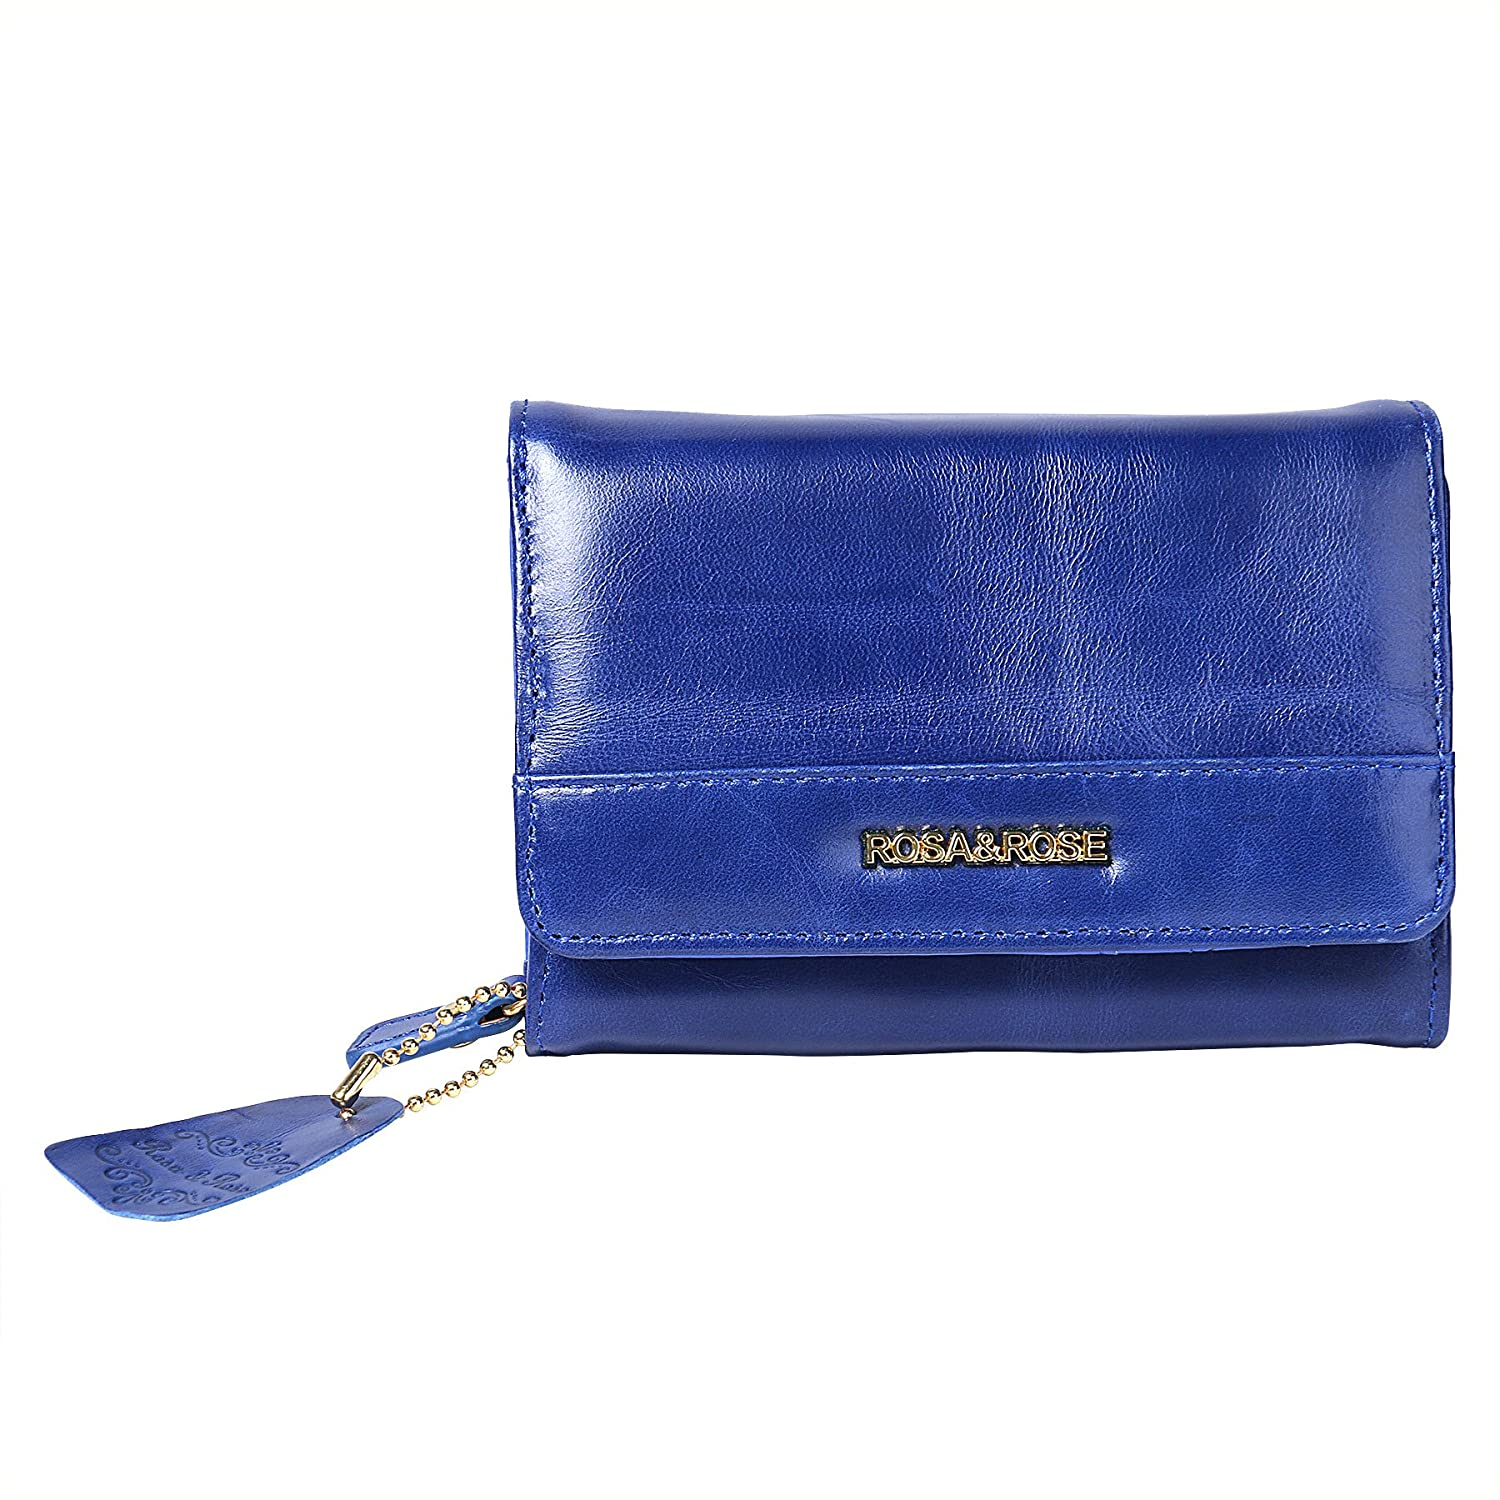 Leather Coin Purse Key Chain Credit Card Wallet Card Holder with ID Window Small Size RSR1809bl